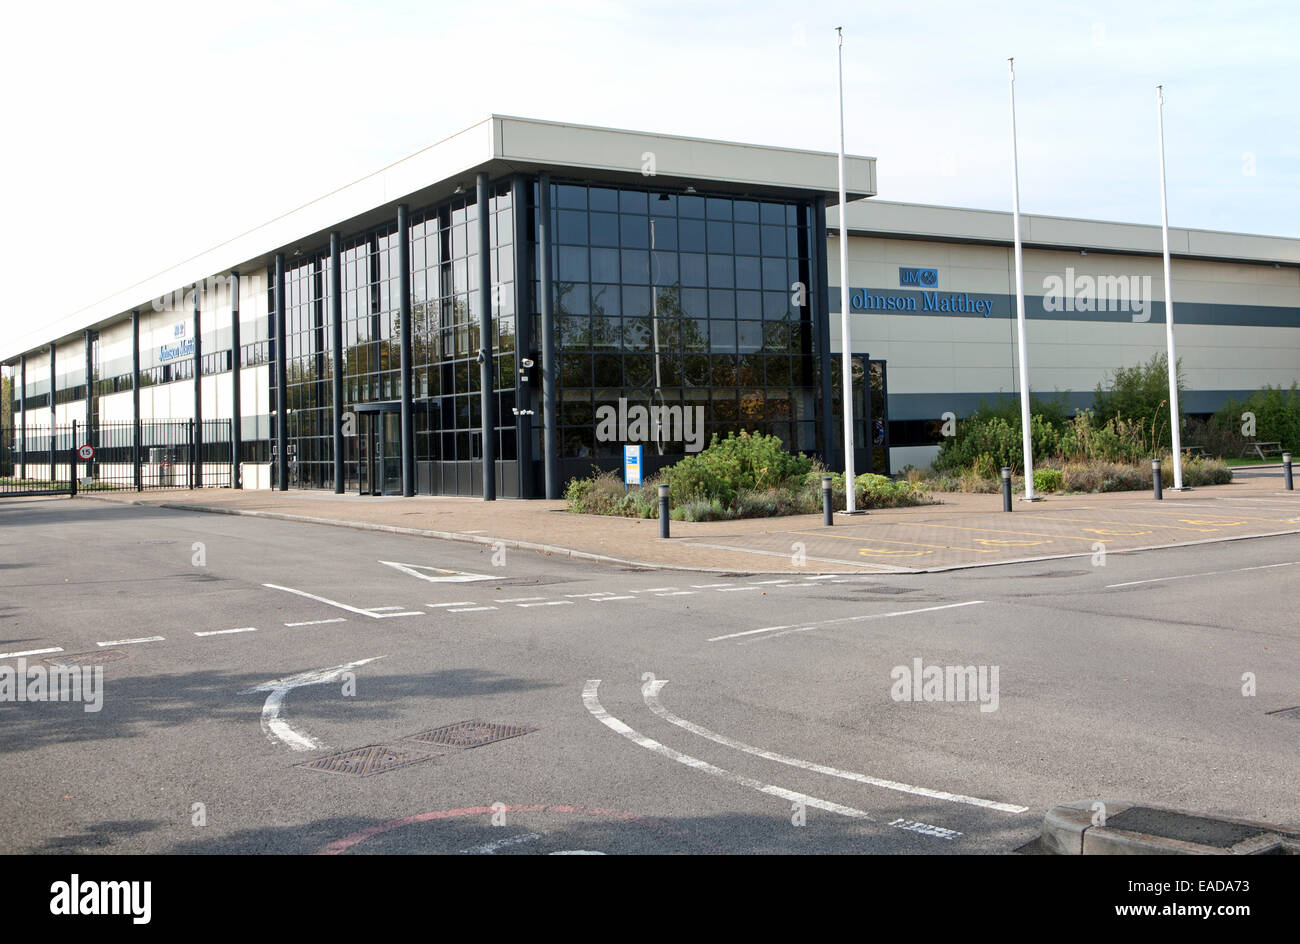 Johnson Matthey Fuel Cells building, Lydiard Fields business park, Swindon, England, UK - Stock Image